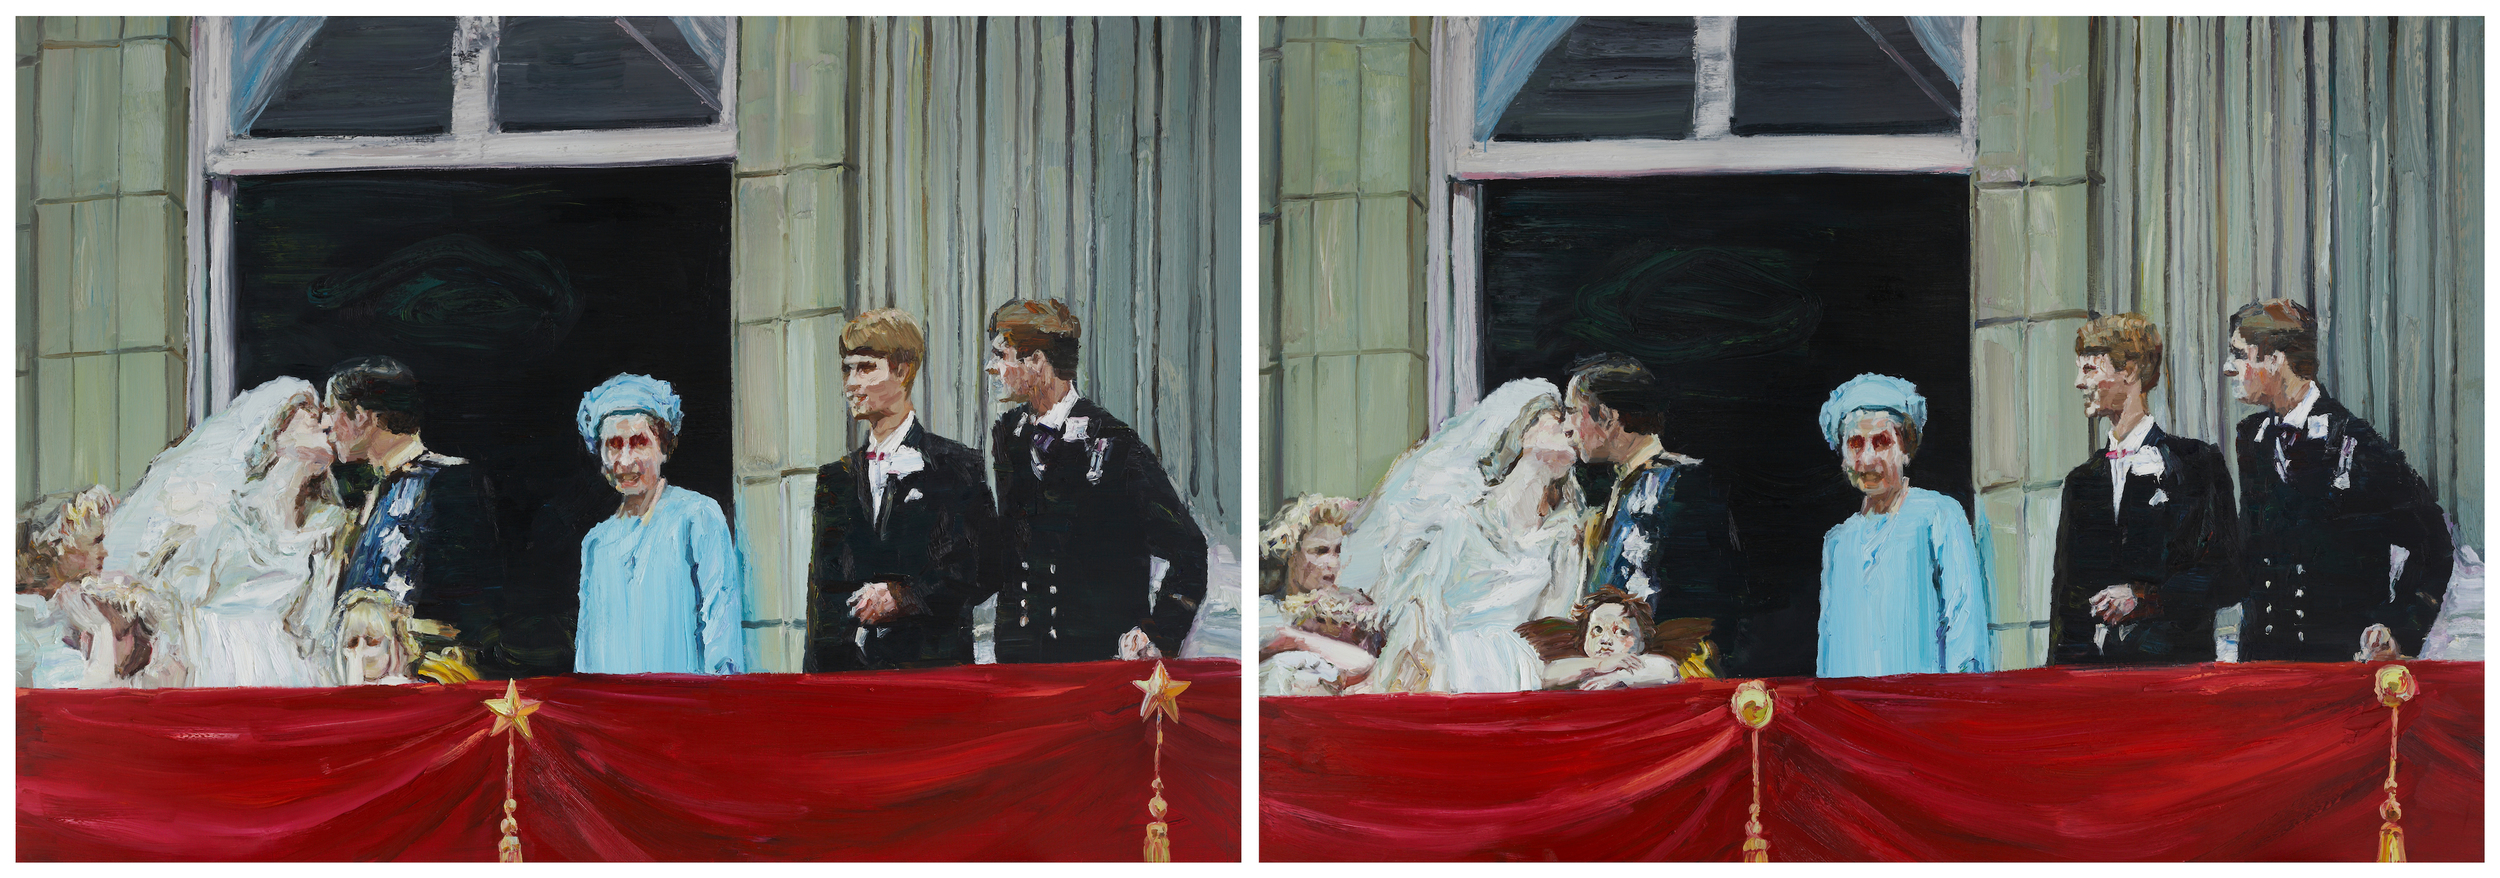 Li Qing 李青, Finding Differences · Wedding (There are 6 differences in the two paintings) 大家来找碴 · 婚礼 (两图有六处不同), 2006, Oil on canvas 布面油画, 190 x 275 cm x 2